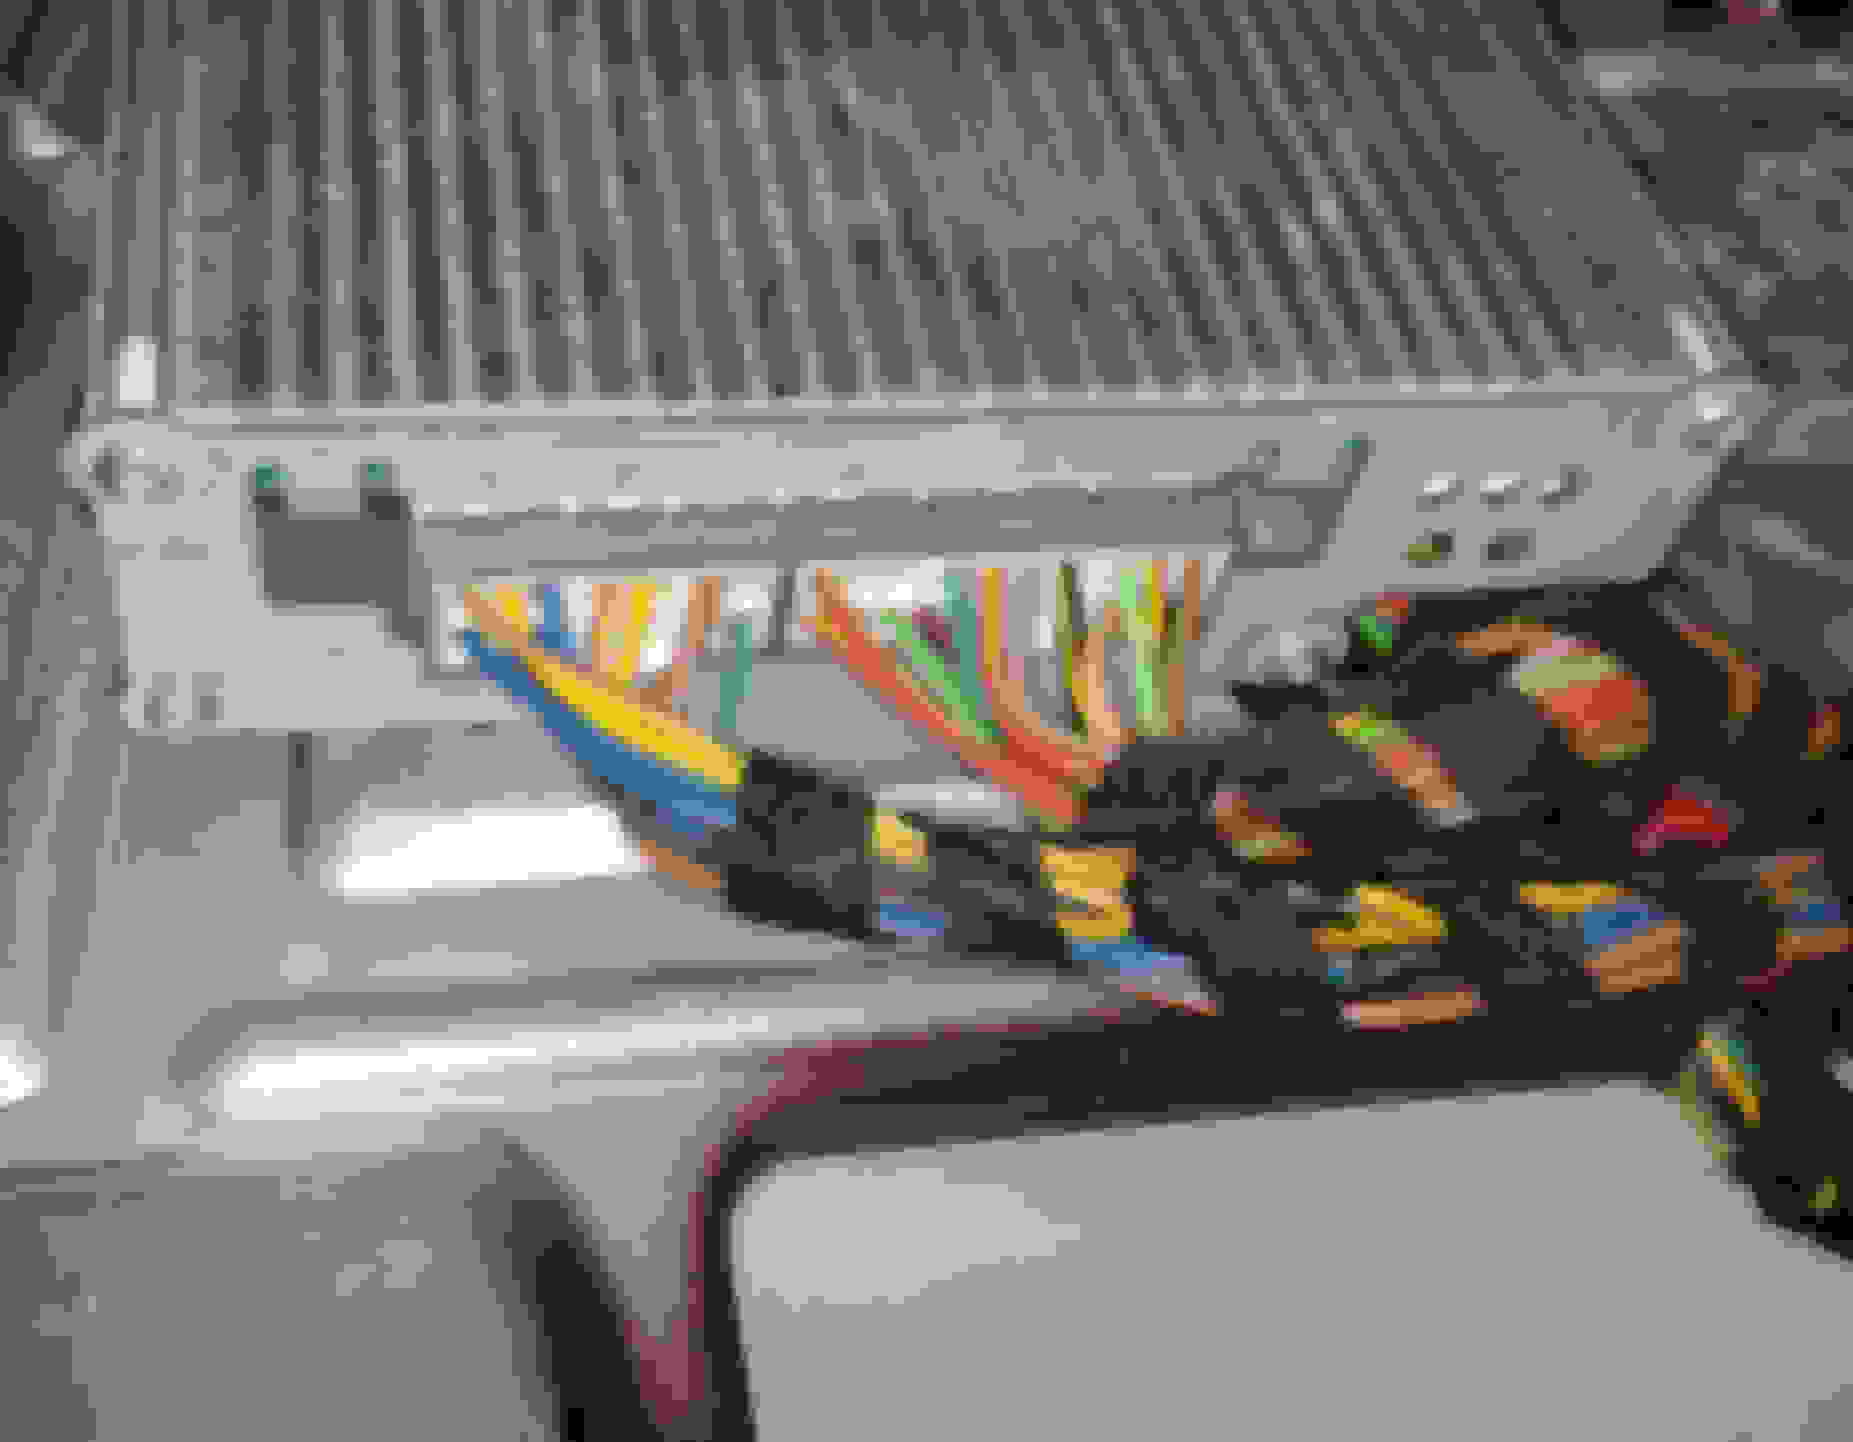 hight resolution of rear subs wiring gone crossfireforum the chrysler crossfire and which head units require no wiring harness crossfireforum the